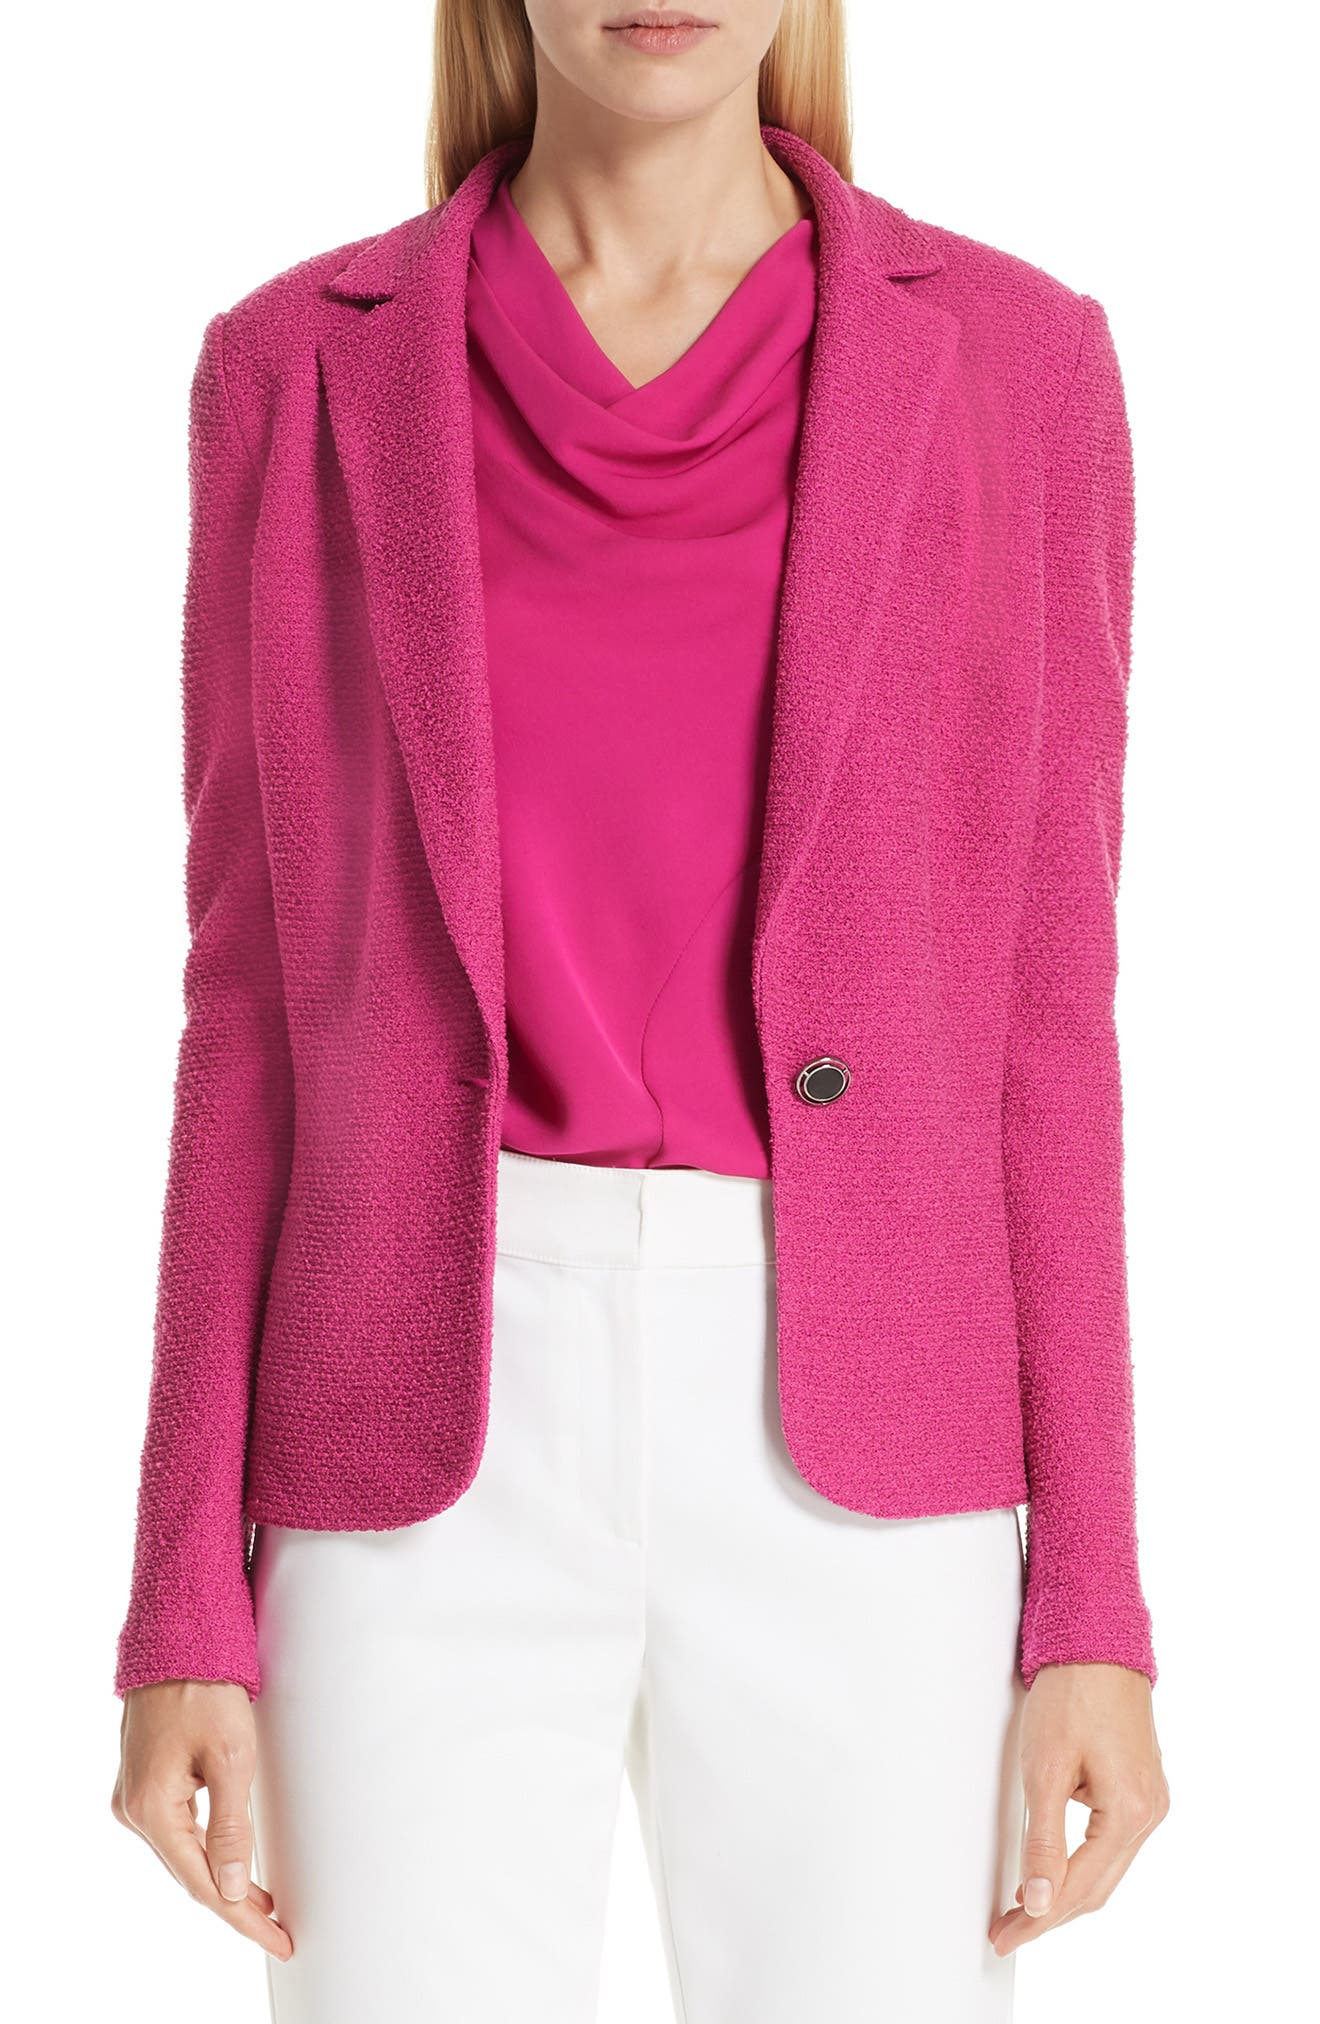 ST. JOHN COLLECTION, Refined Knit Jacket, Main thumbnail 1, color, CAMELLIA